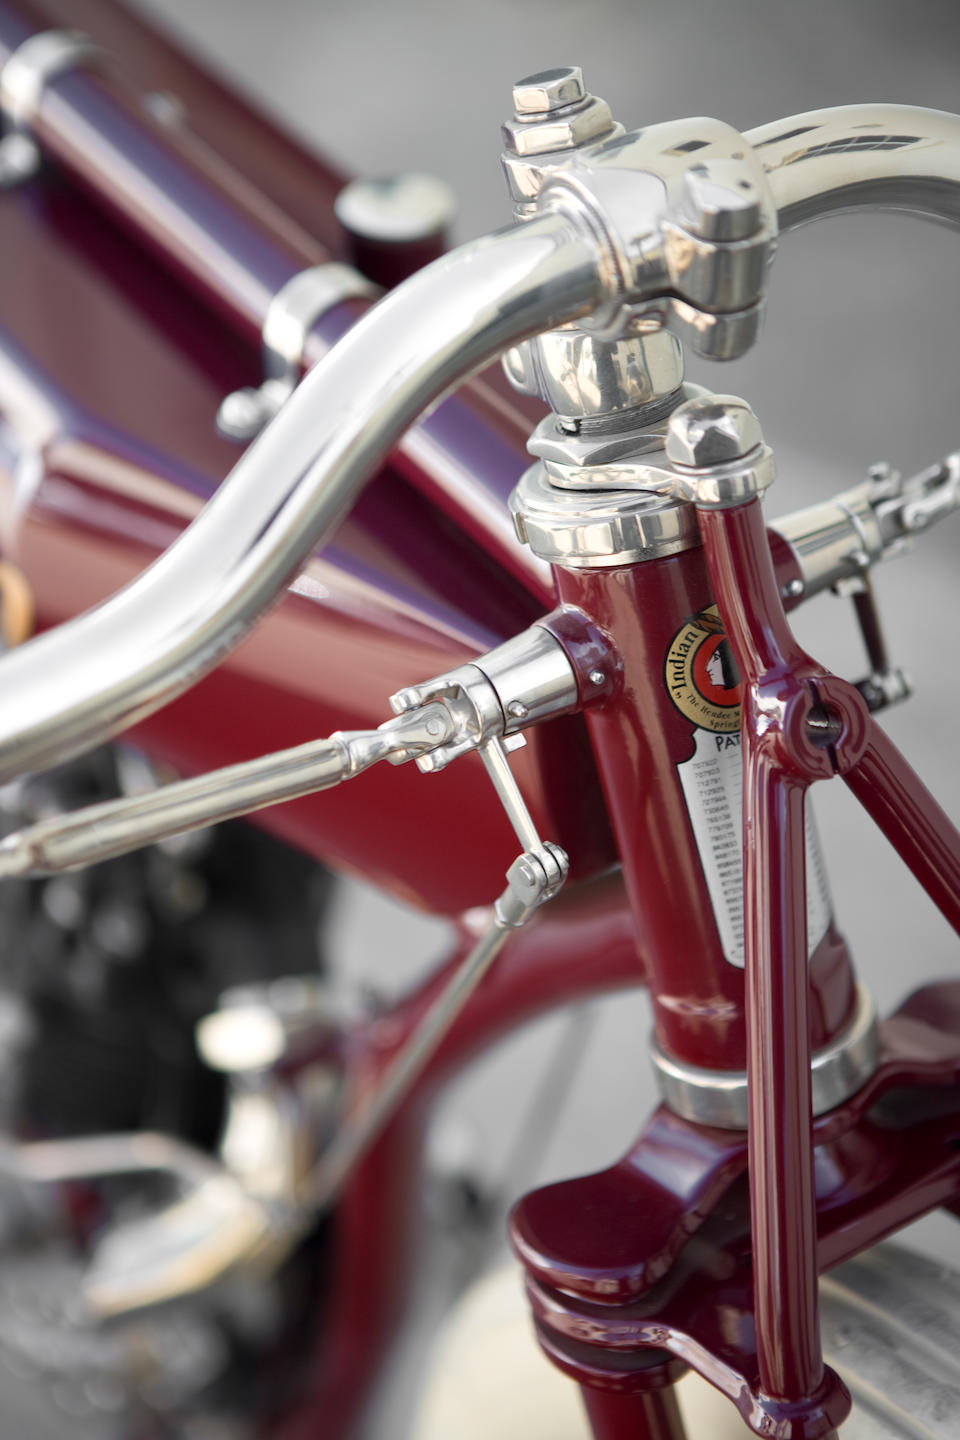 Featured in the Guggenheim's 'The Art of the Motorcycle' exhibit,1914 Indian 8-Valve Racing Motorcycle Engine no. 74E674